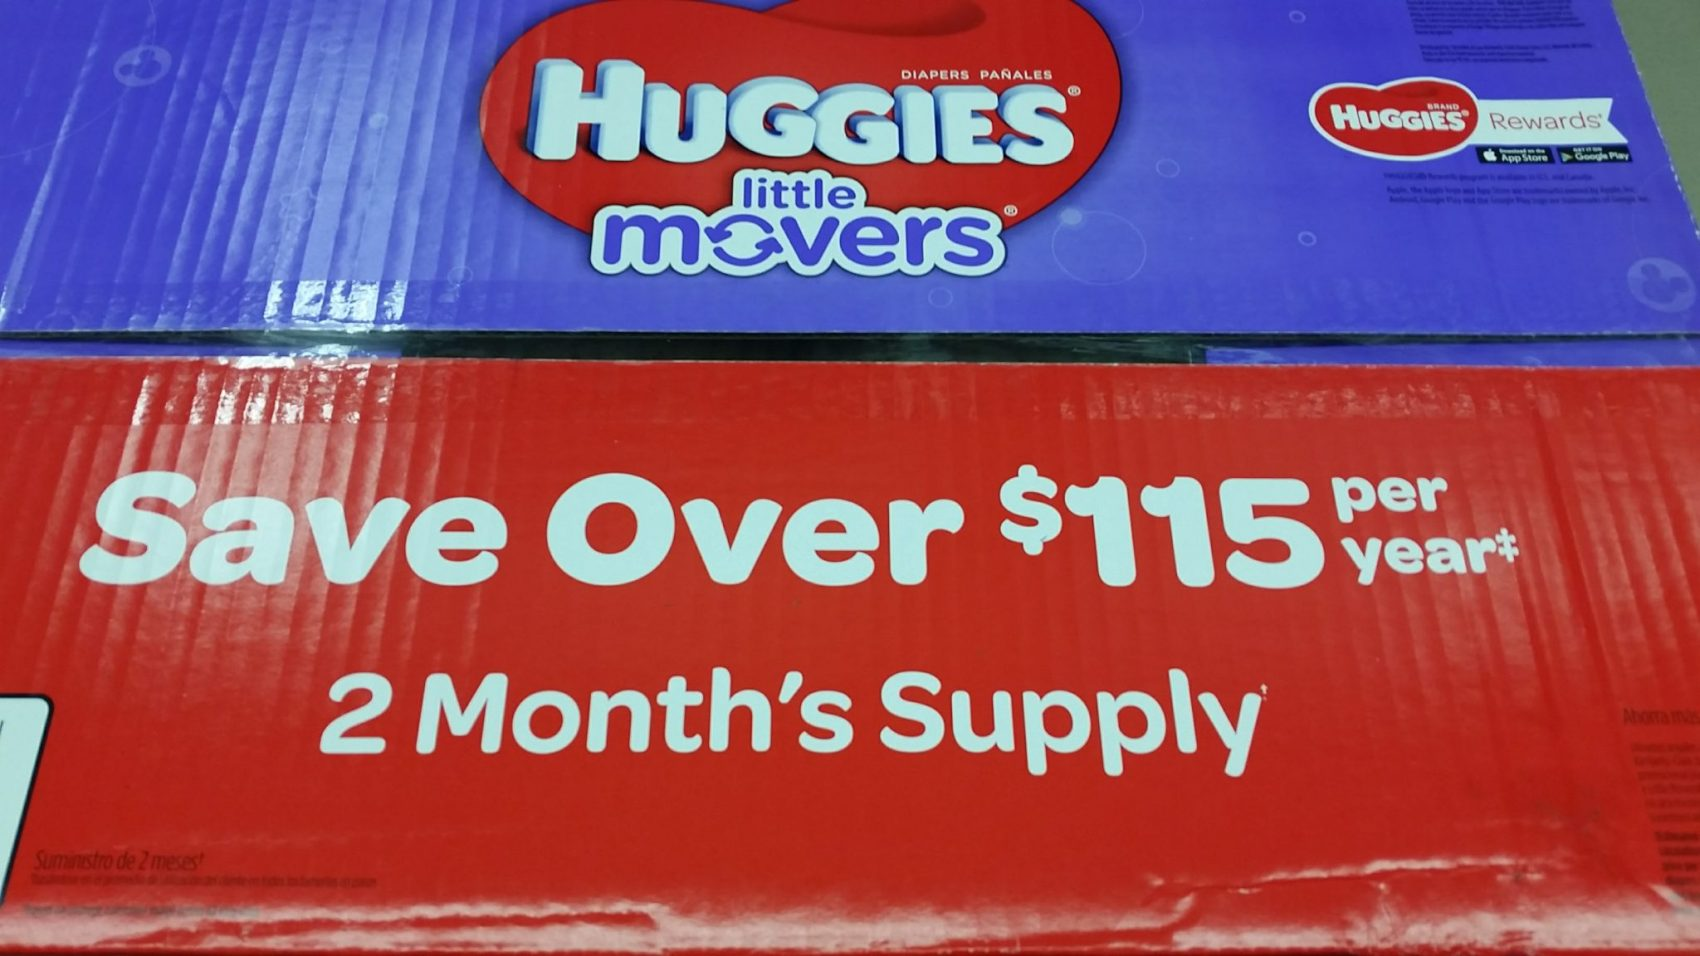 #SPONSORED #BIGGESTPACKEVER, How to save on diapers with Sam's Club, Biggest pack ever, huggies little movers, sam's club, saving at sam's club, diapers at sam's club, how to save on diapers, deals on diapers